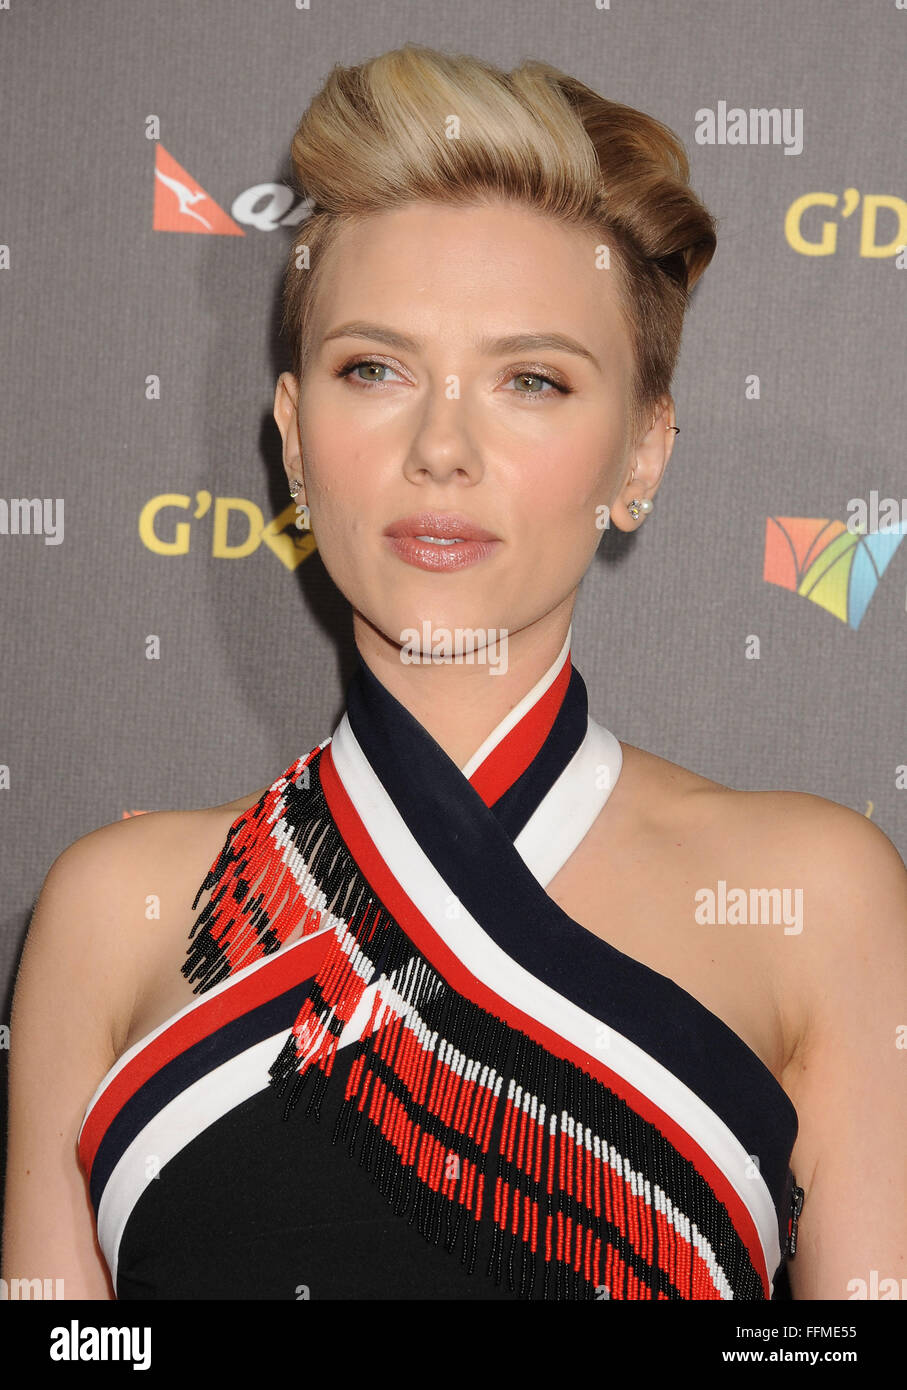 e2c77ae59be Actress Scarlett Johansson attends the 2015 G Day USA Gala featuring the AACTA  International Awards